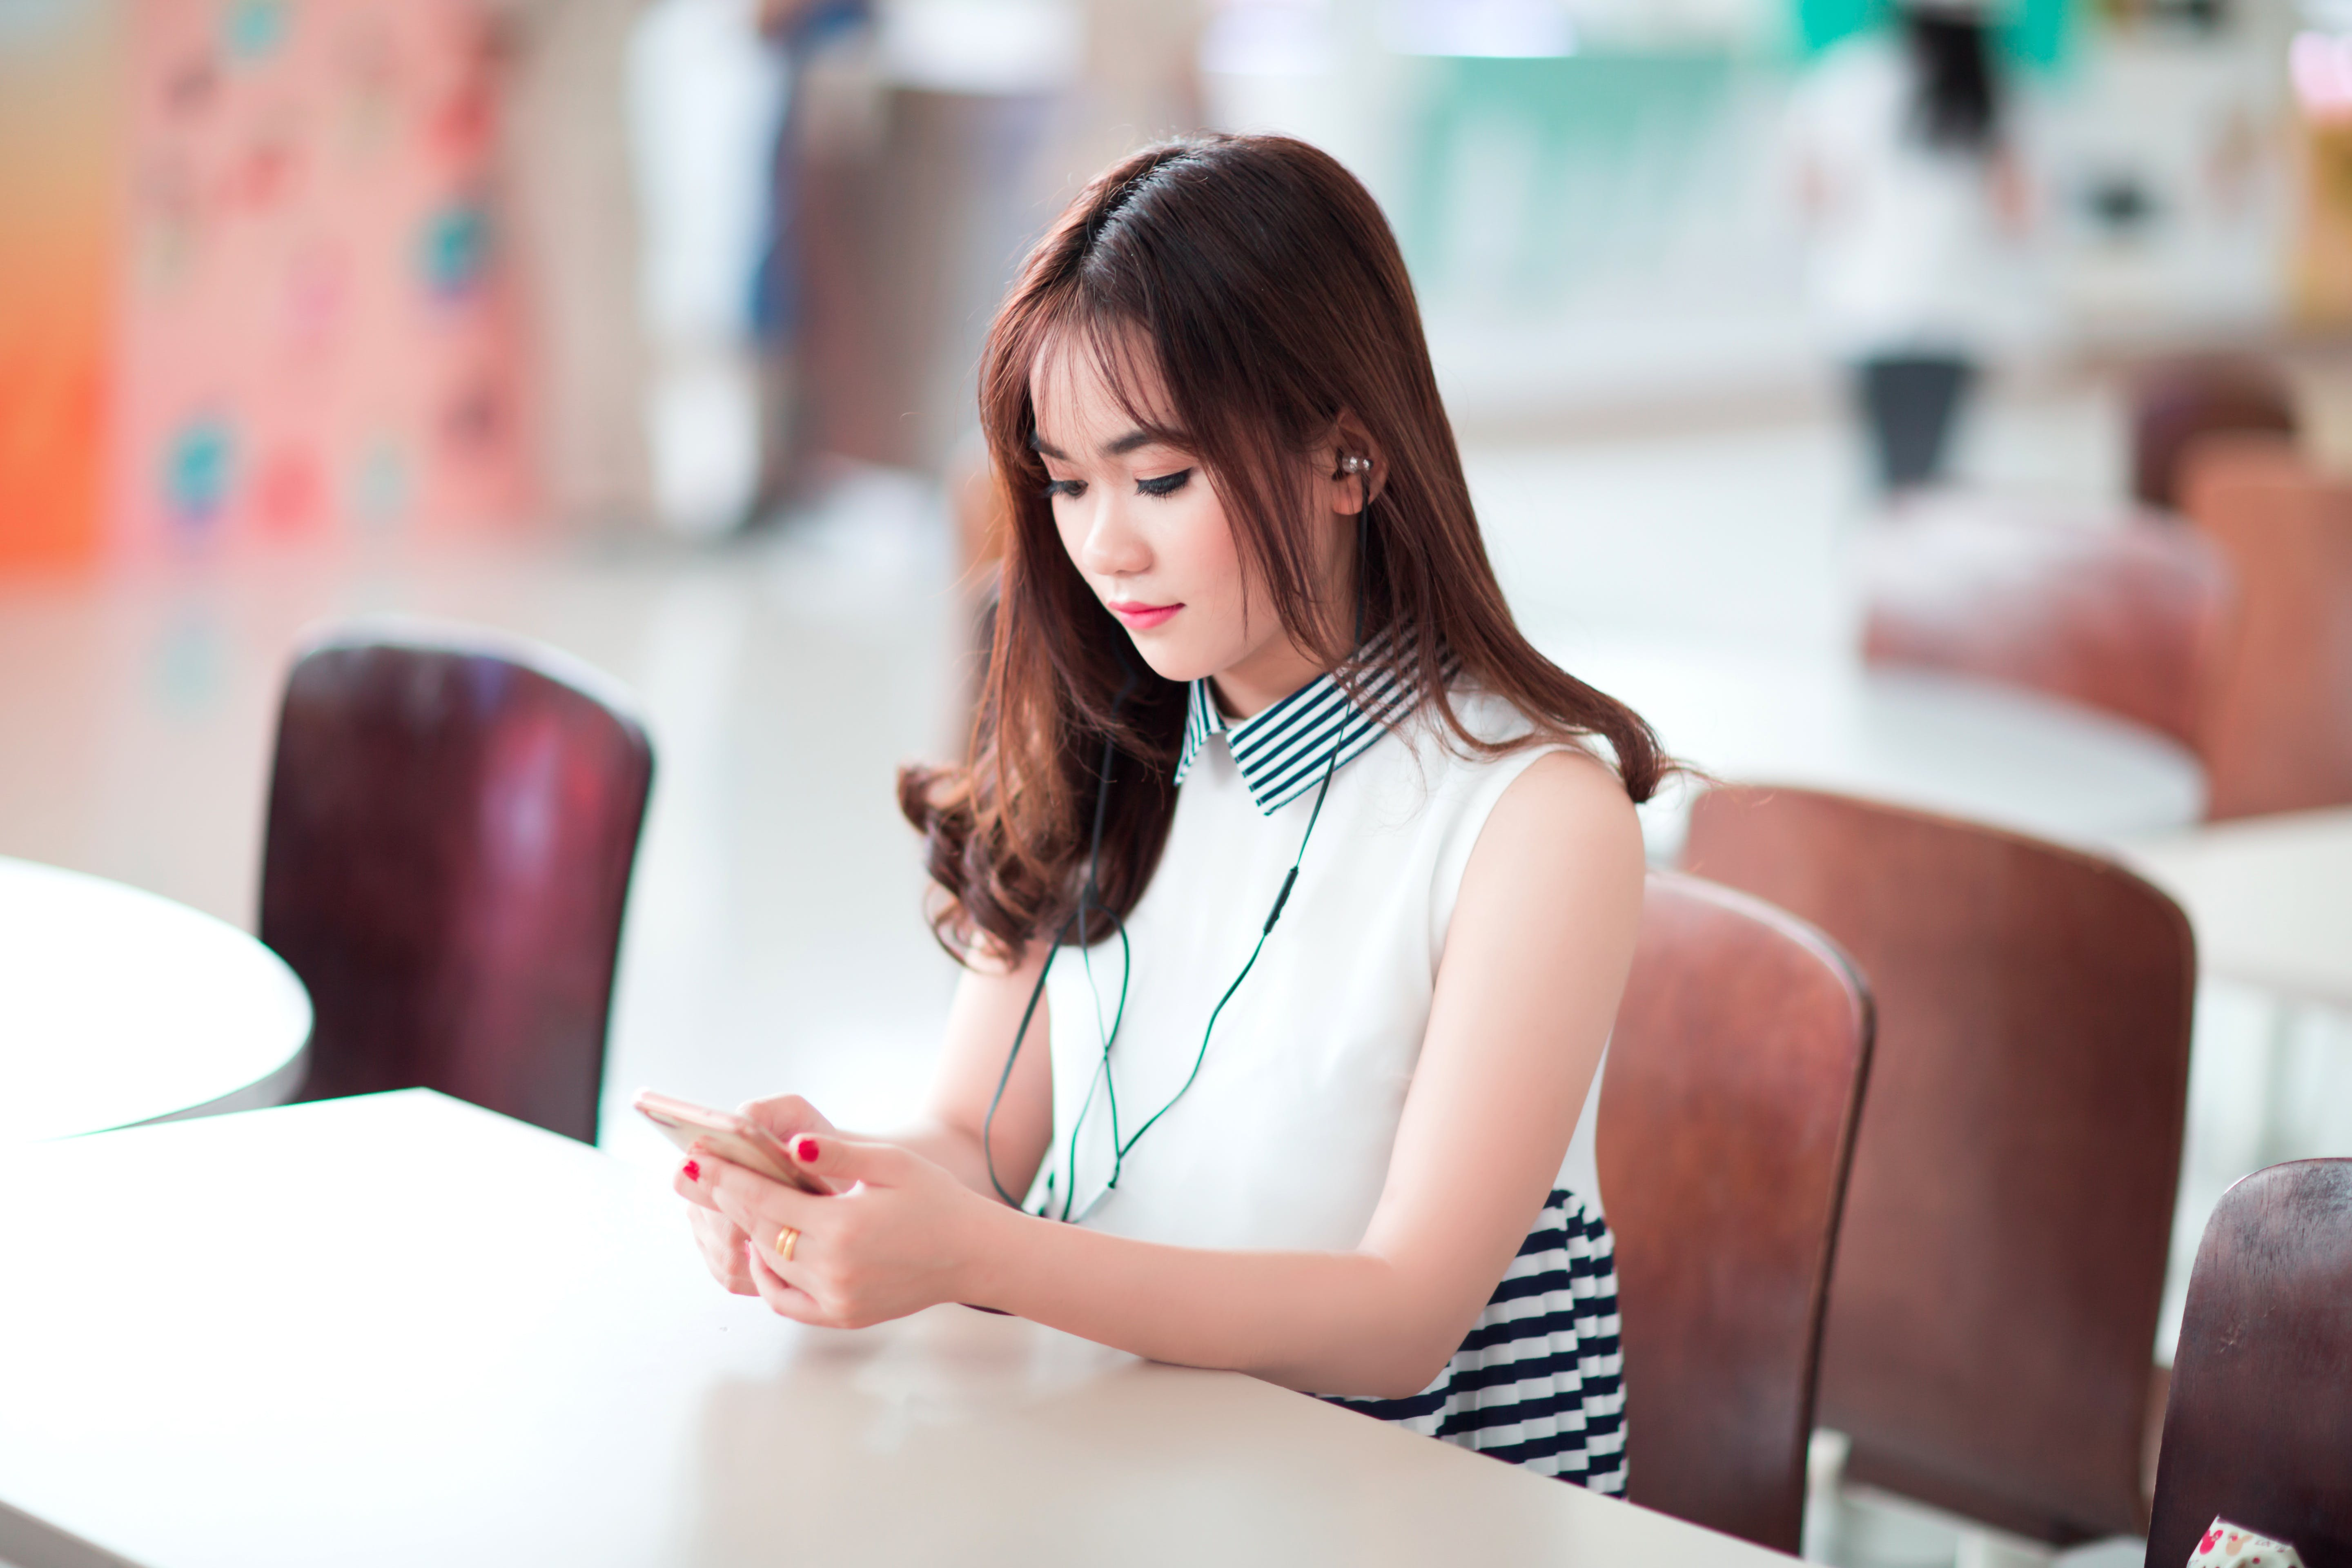 Woman Sitting on Chair Holding Smartphone